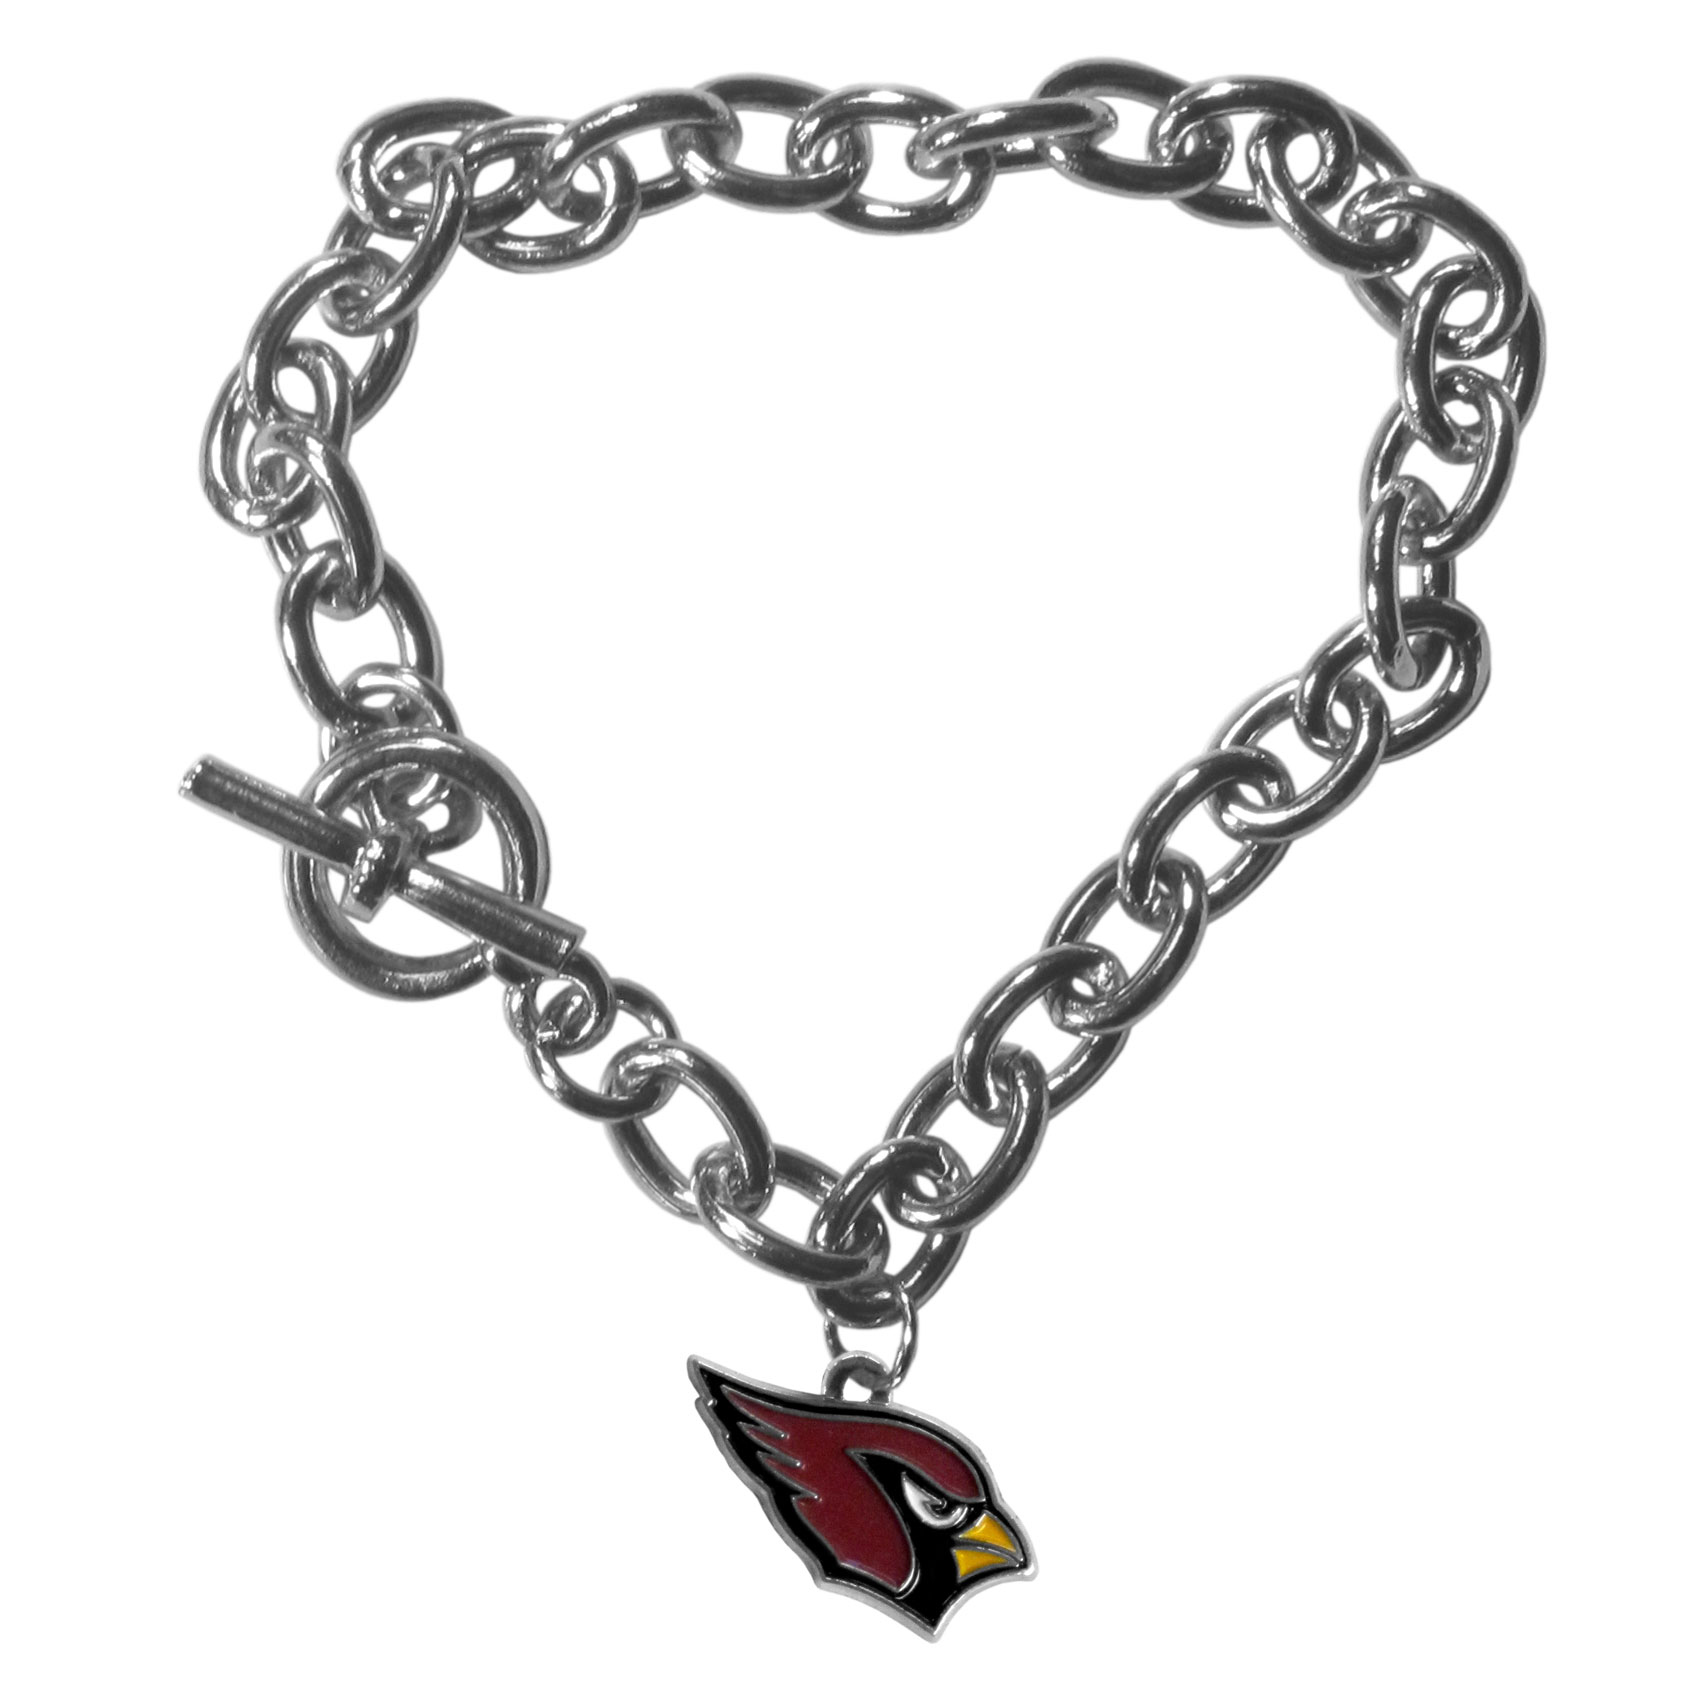 Arizona Cardinals Charm Chain Bracelets - Our classic single charm bracelet is a great way to show off your team pride! The 7.5 inch large link chain features a high polish Arizona Cardinals charm and features a toggle clasp which makes it super easy to take on and off. Officially licensed NFL product Licensee: Siskiyou Buckle Thank you for visiting CrazedOutSports.com